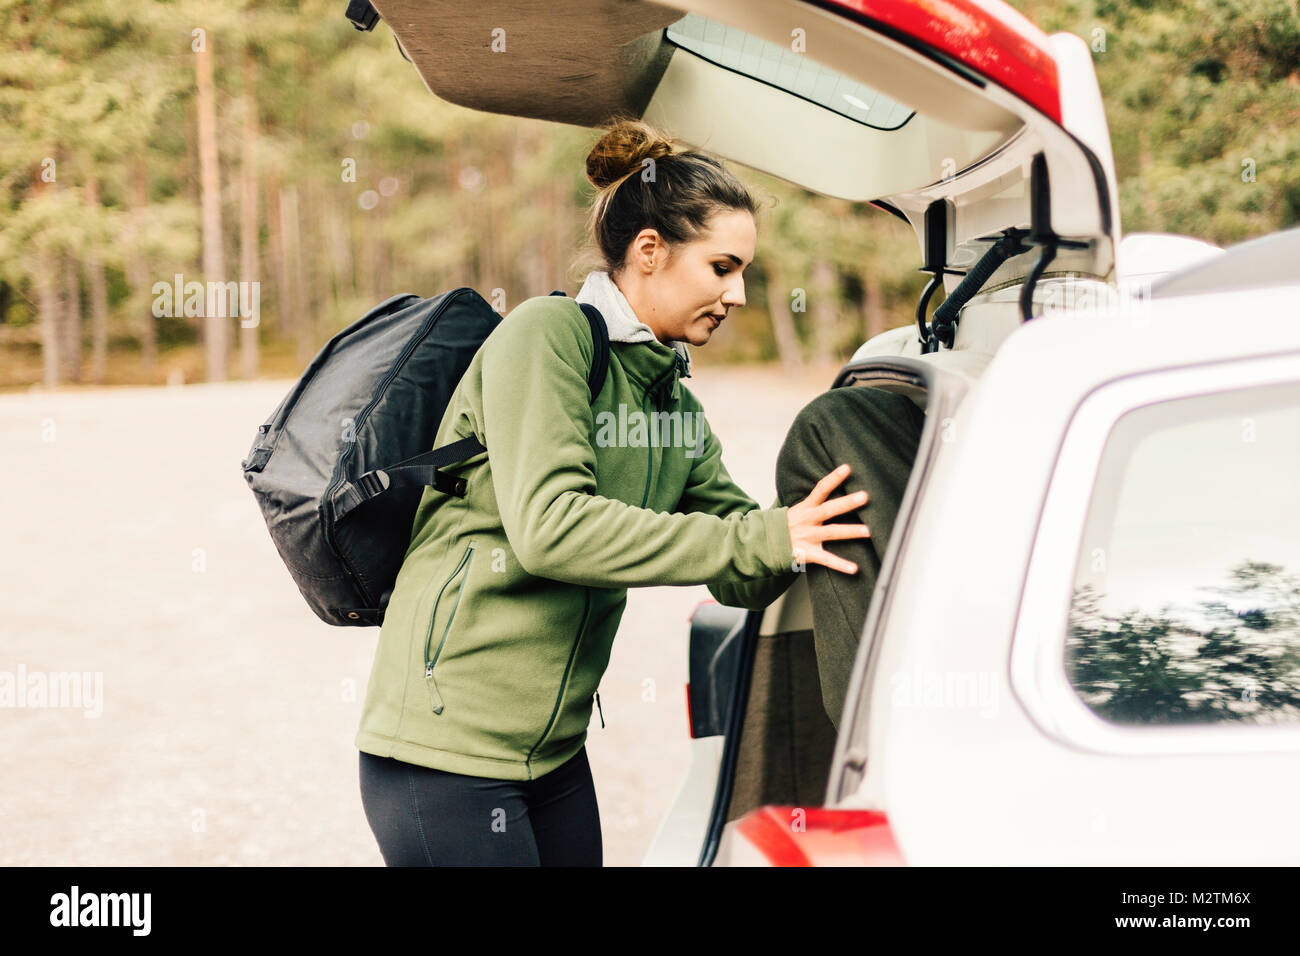 Woman loading bags in car in Sodermanland, Sweden - Stock Image